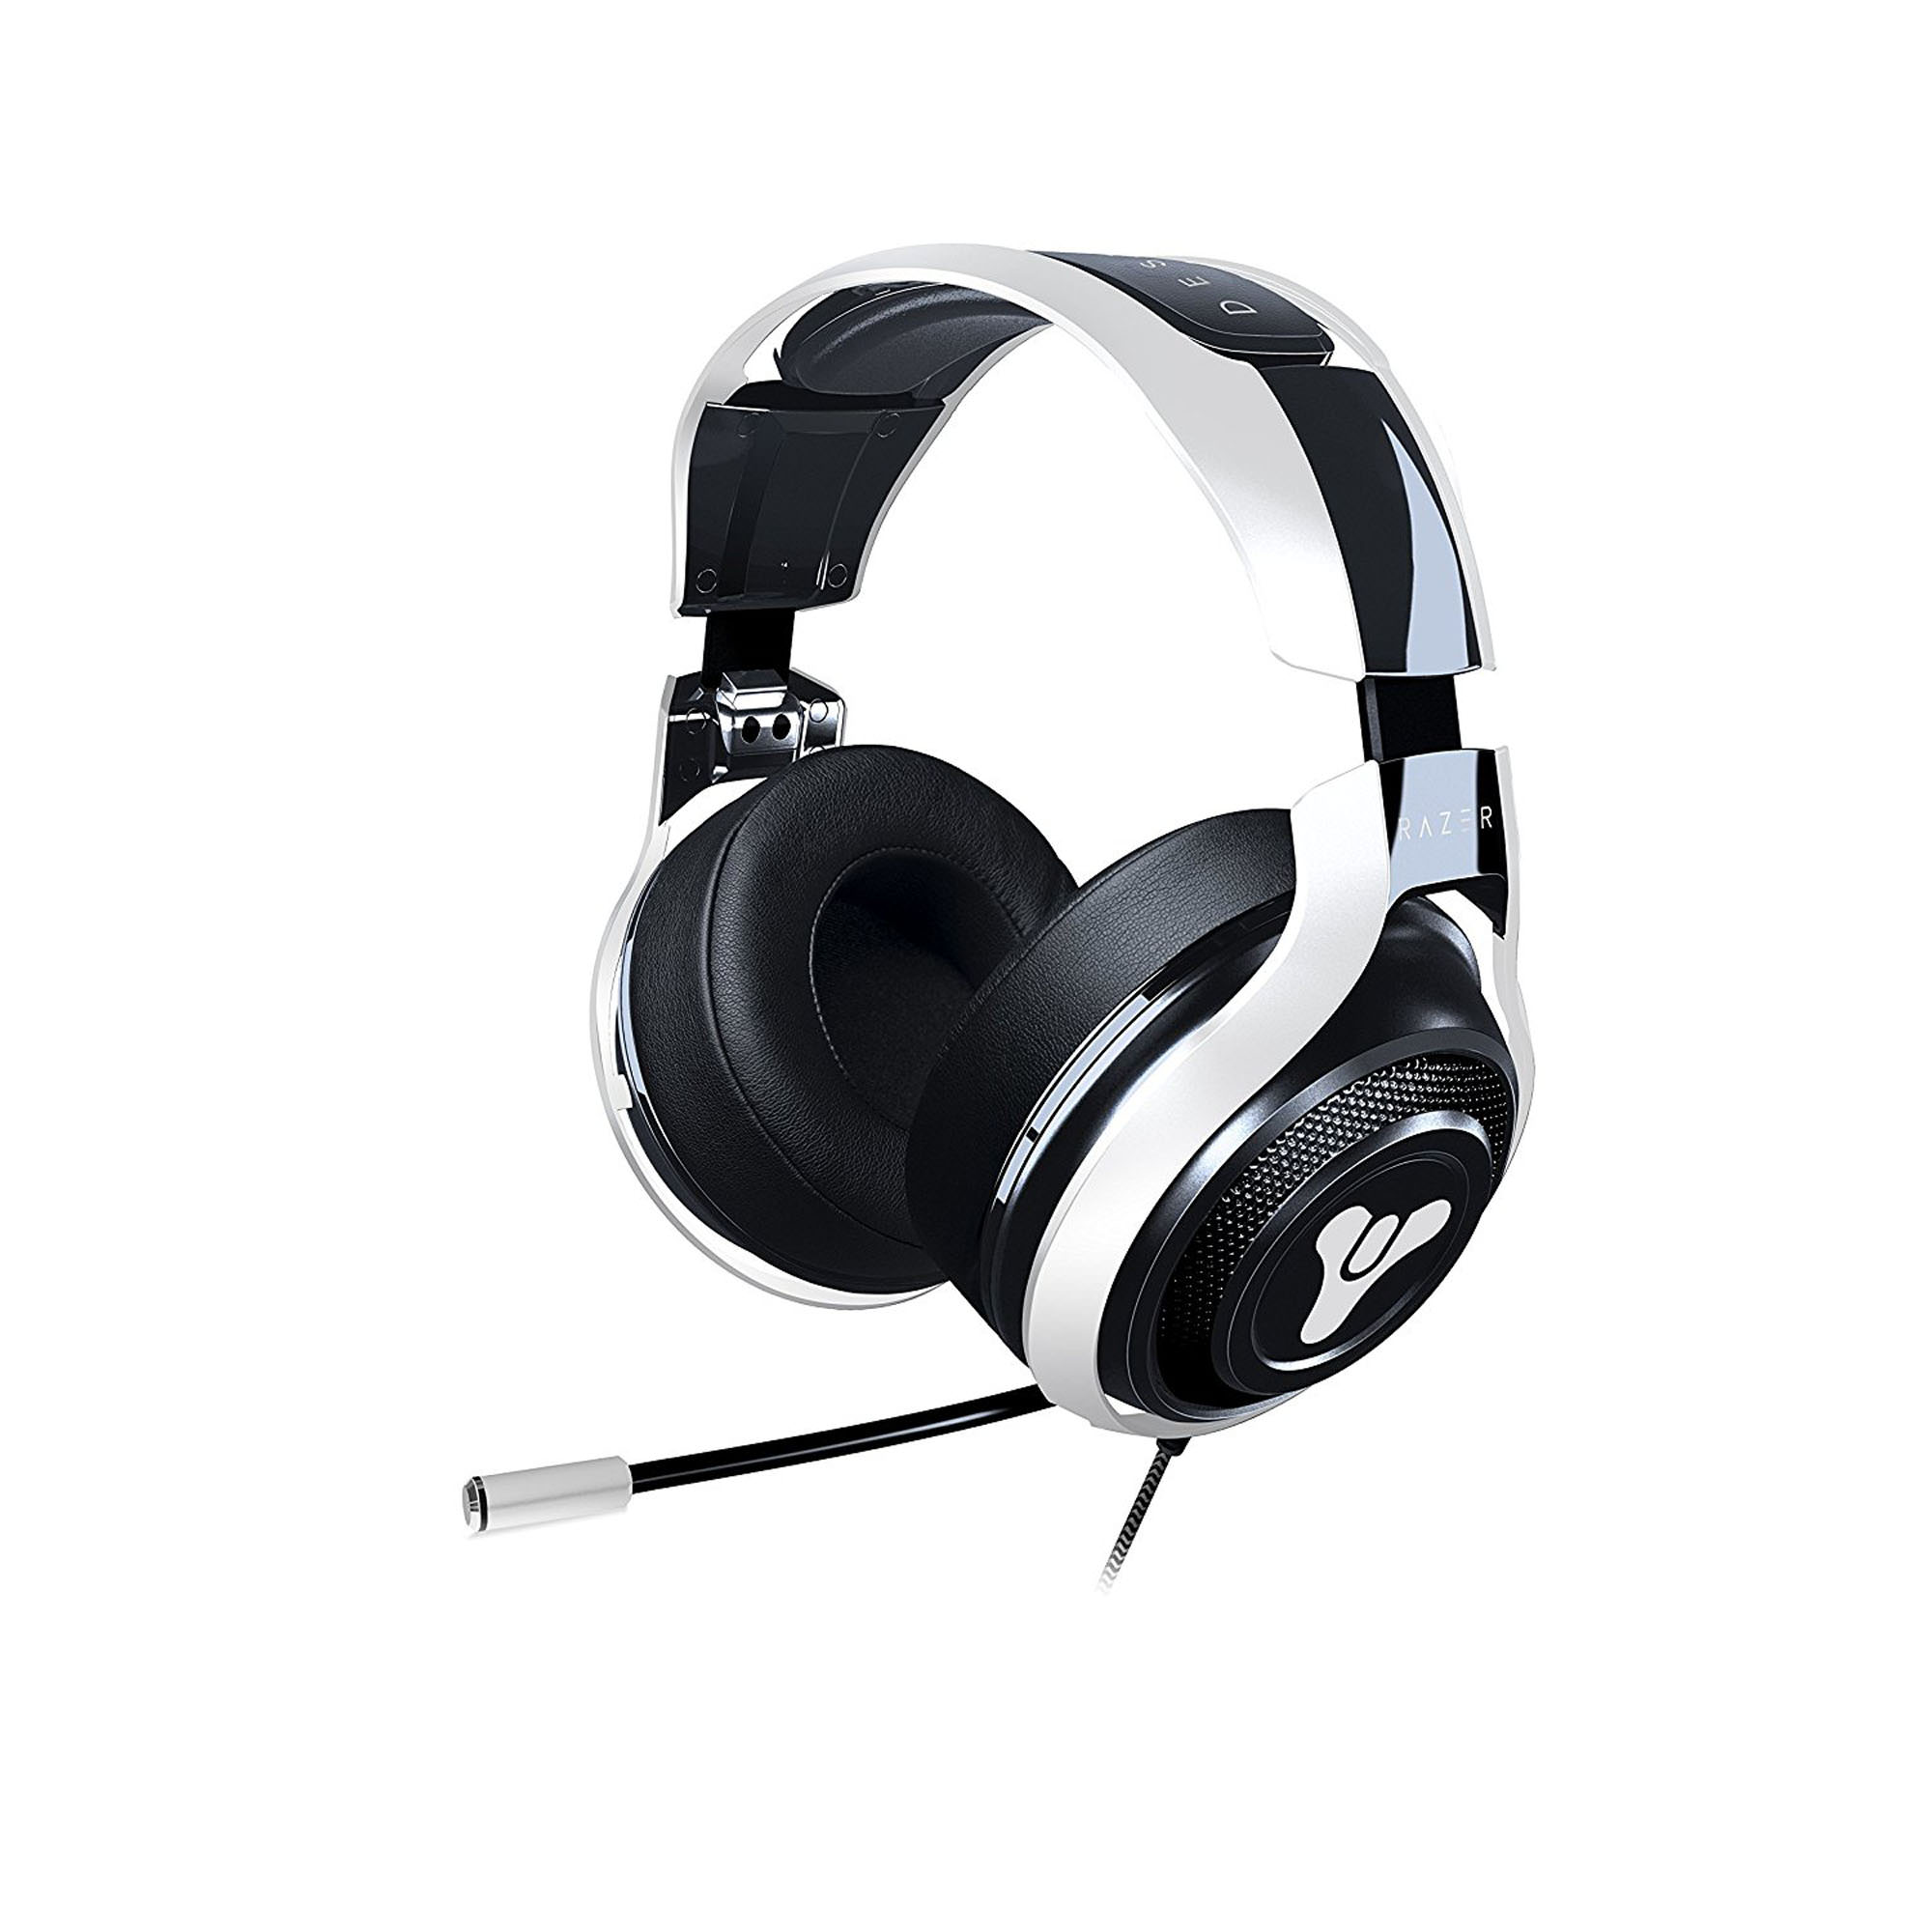 Destiny 2 Razer ManO War Tournament Edition - Analog Gaming Headset